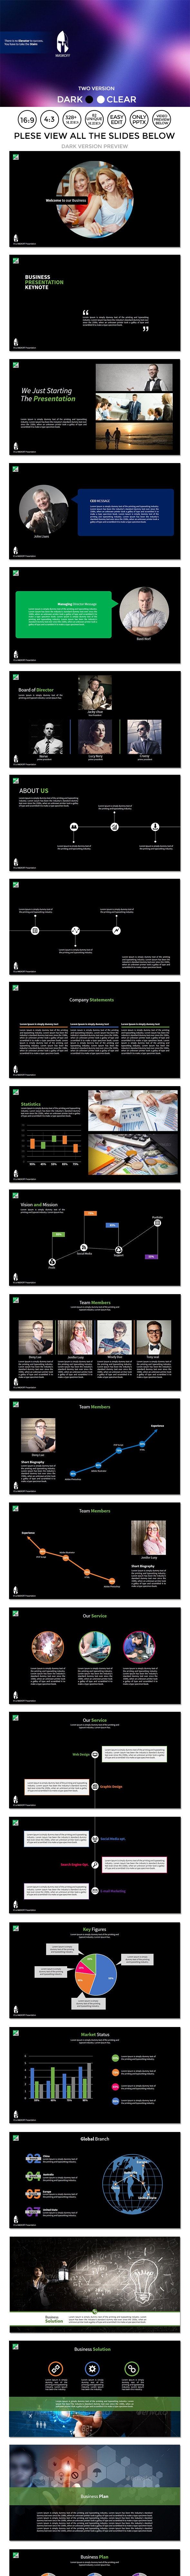 Maskoff PowerPoint Presentation 2013 for Business  - Business PowerPoint Templates